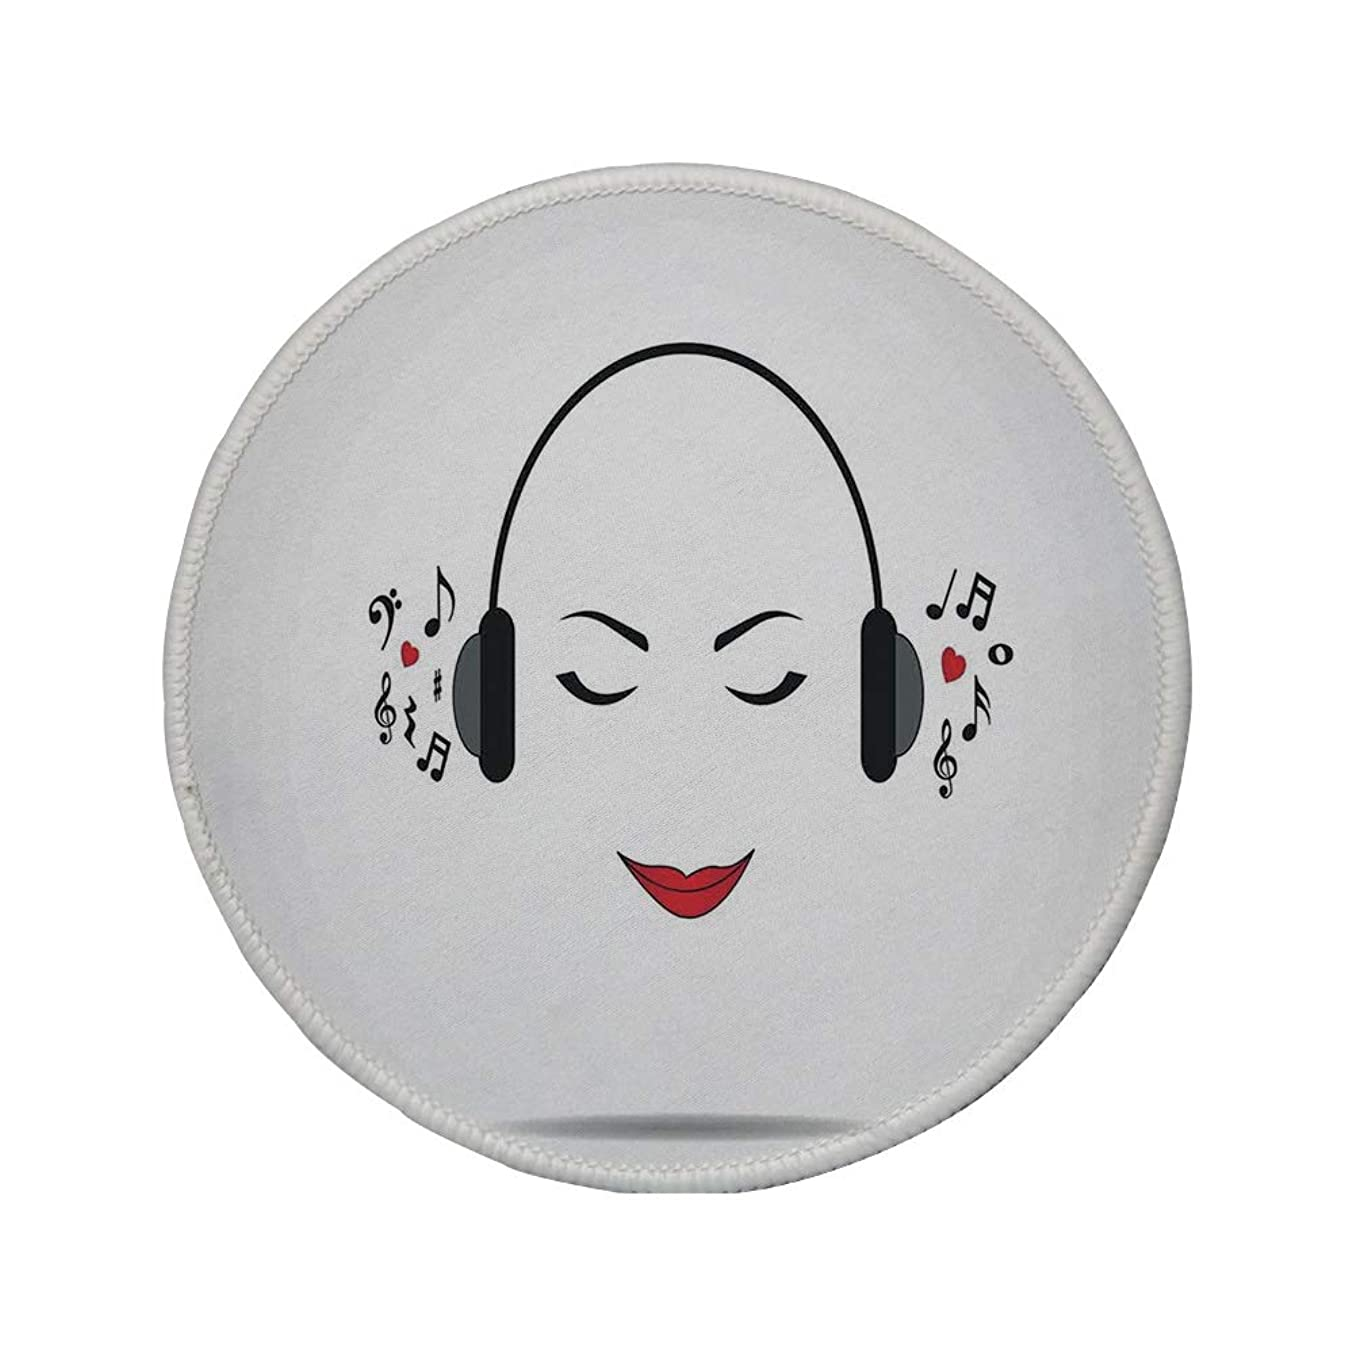 Non-Slip Rubber Round Mouse Pad,Music Decor,Young Lady Listening Music with Earphones Smiling Close Eyed Girl Enjoying Melody Theme,Black White,11.8